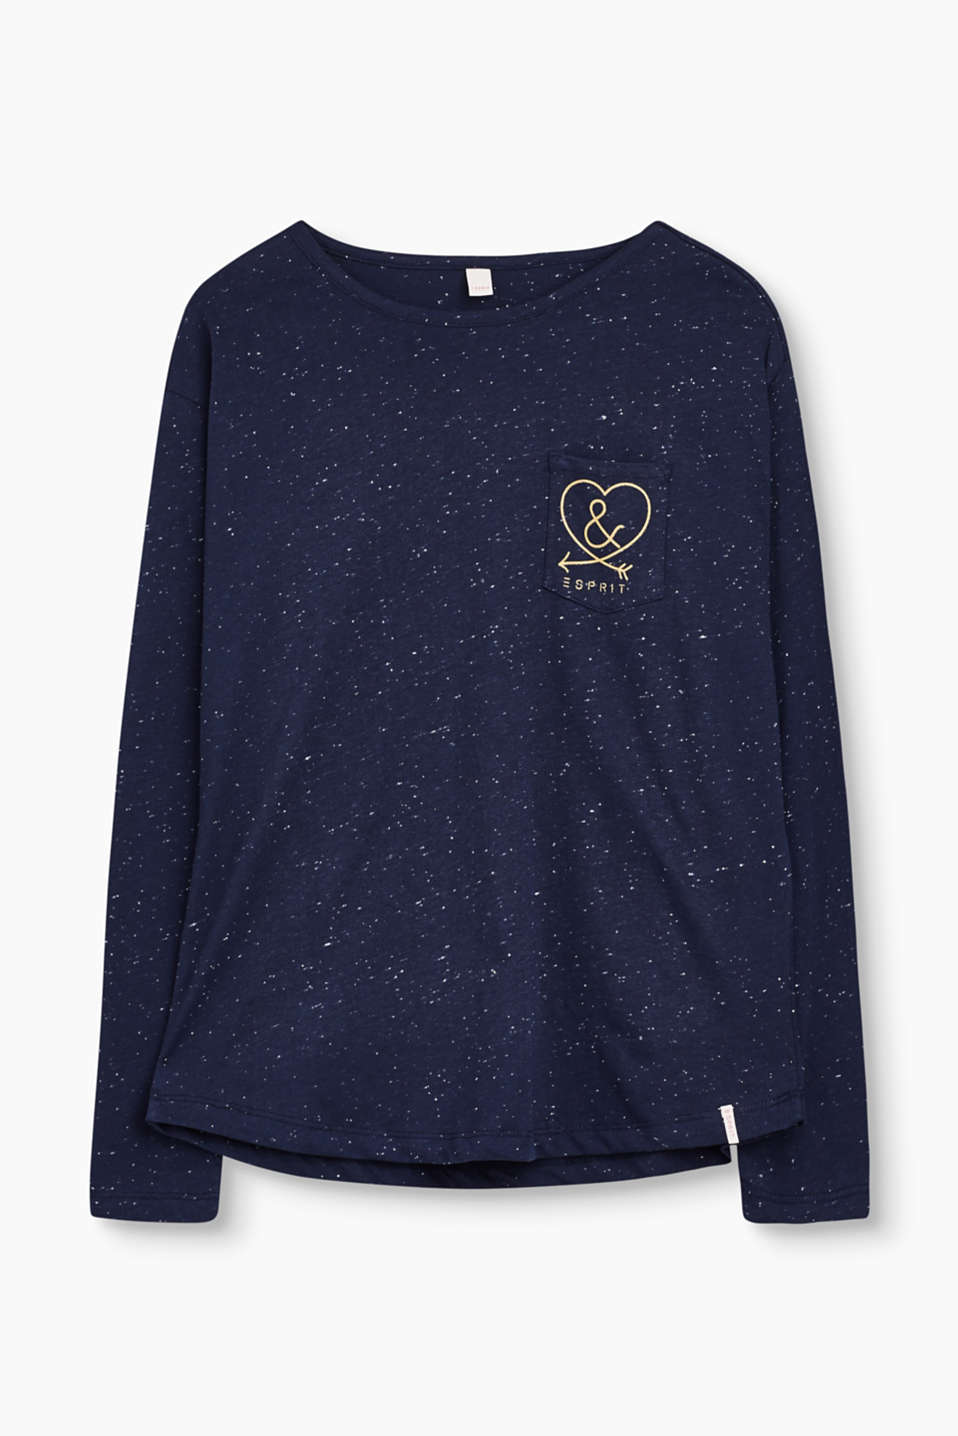 The glittering print on the breast pocket and bobbly texture give this long sleeve tee its mega trendy look.